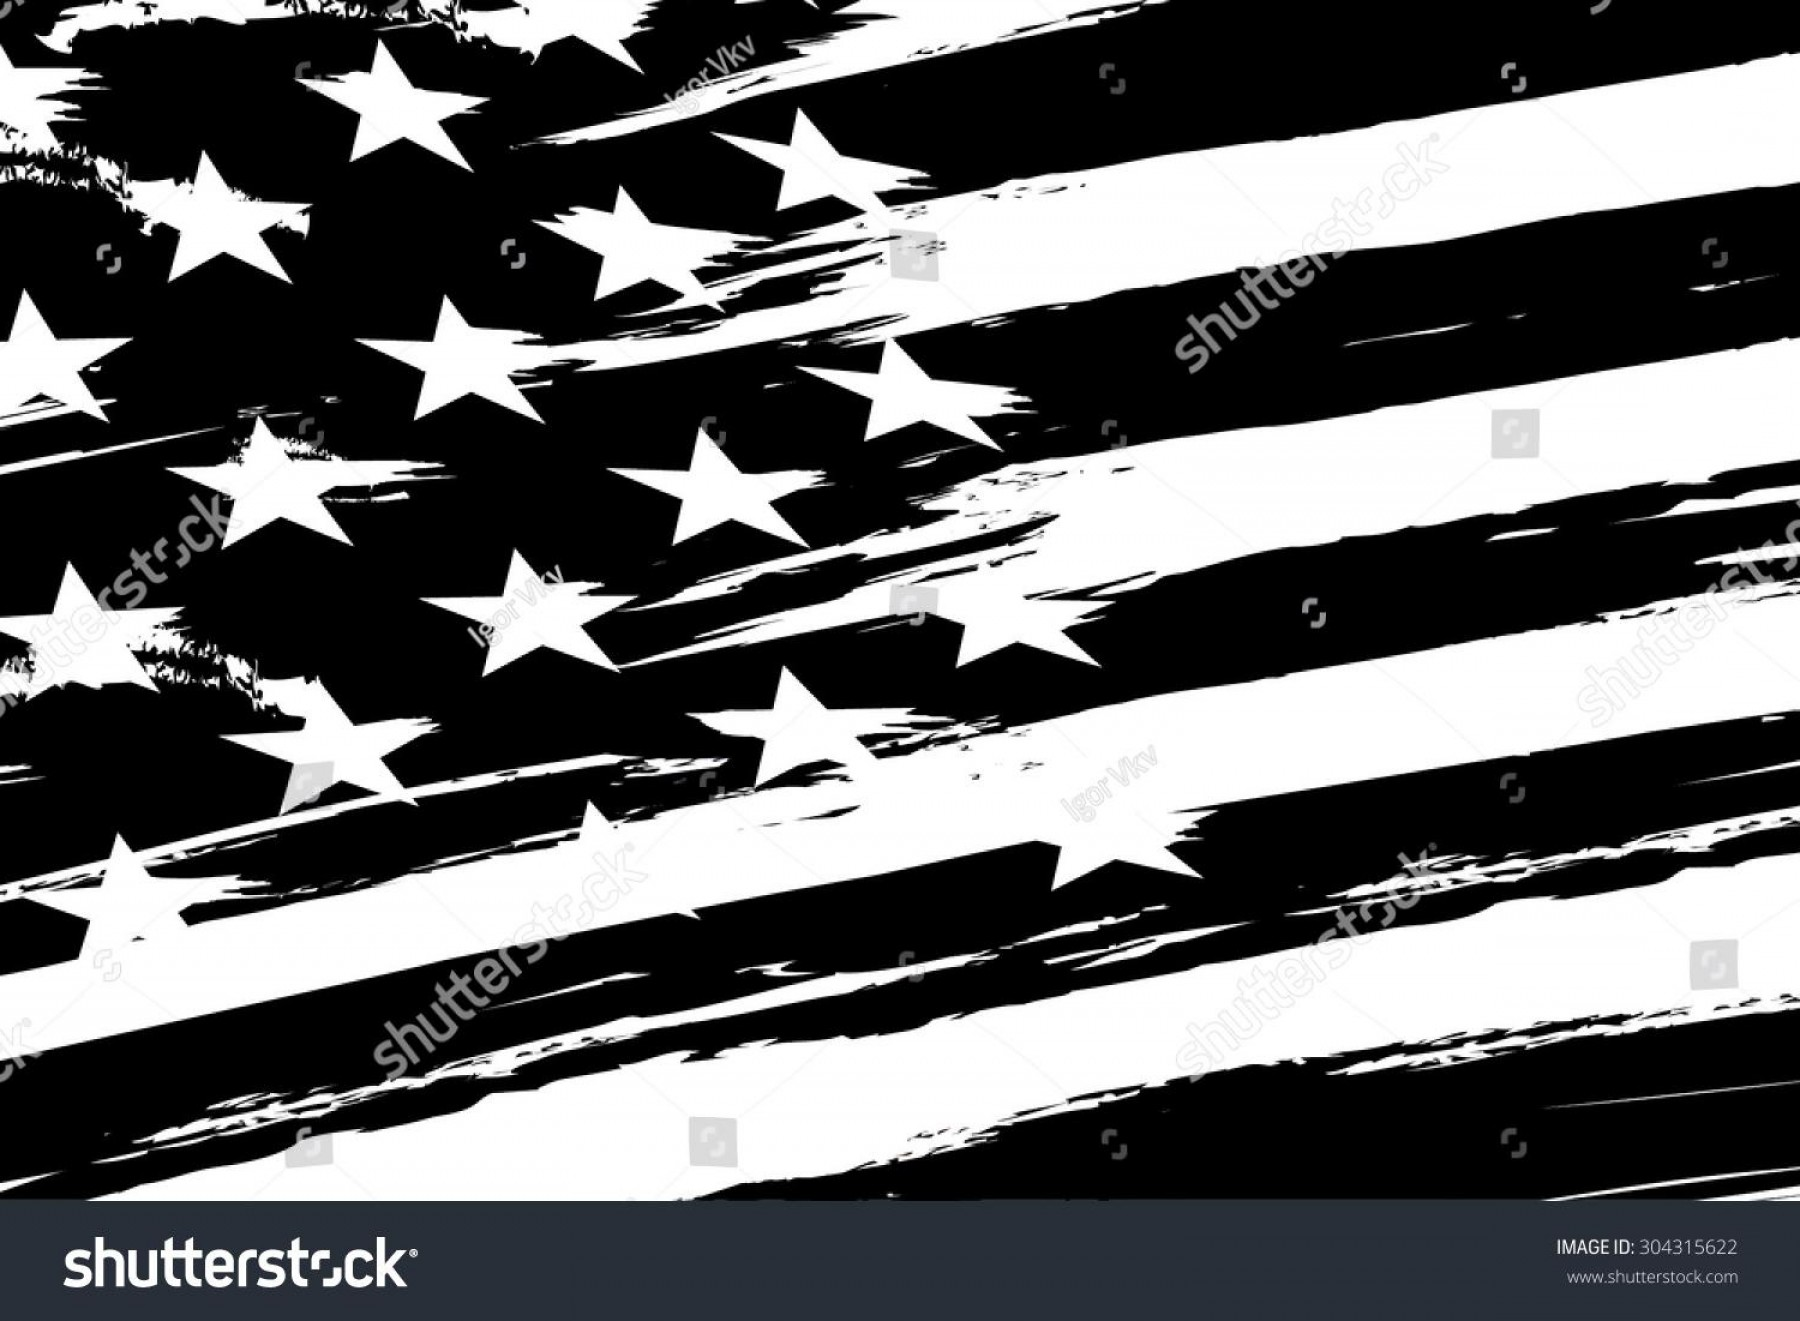 1800x1321 Hd Black And White Tattered American Flag Vector Design Rongholland